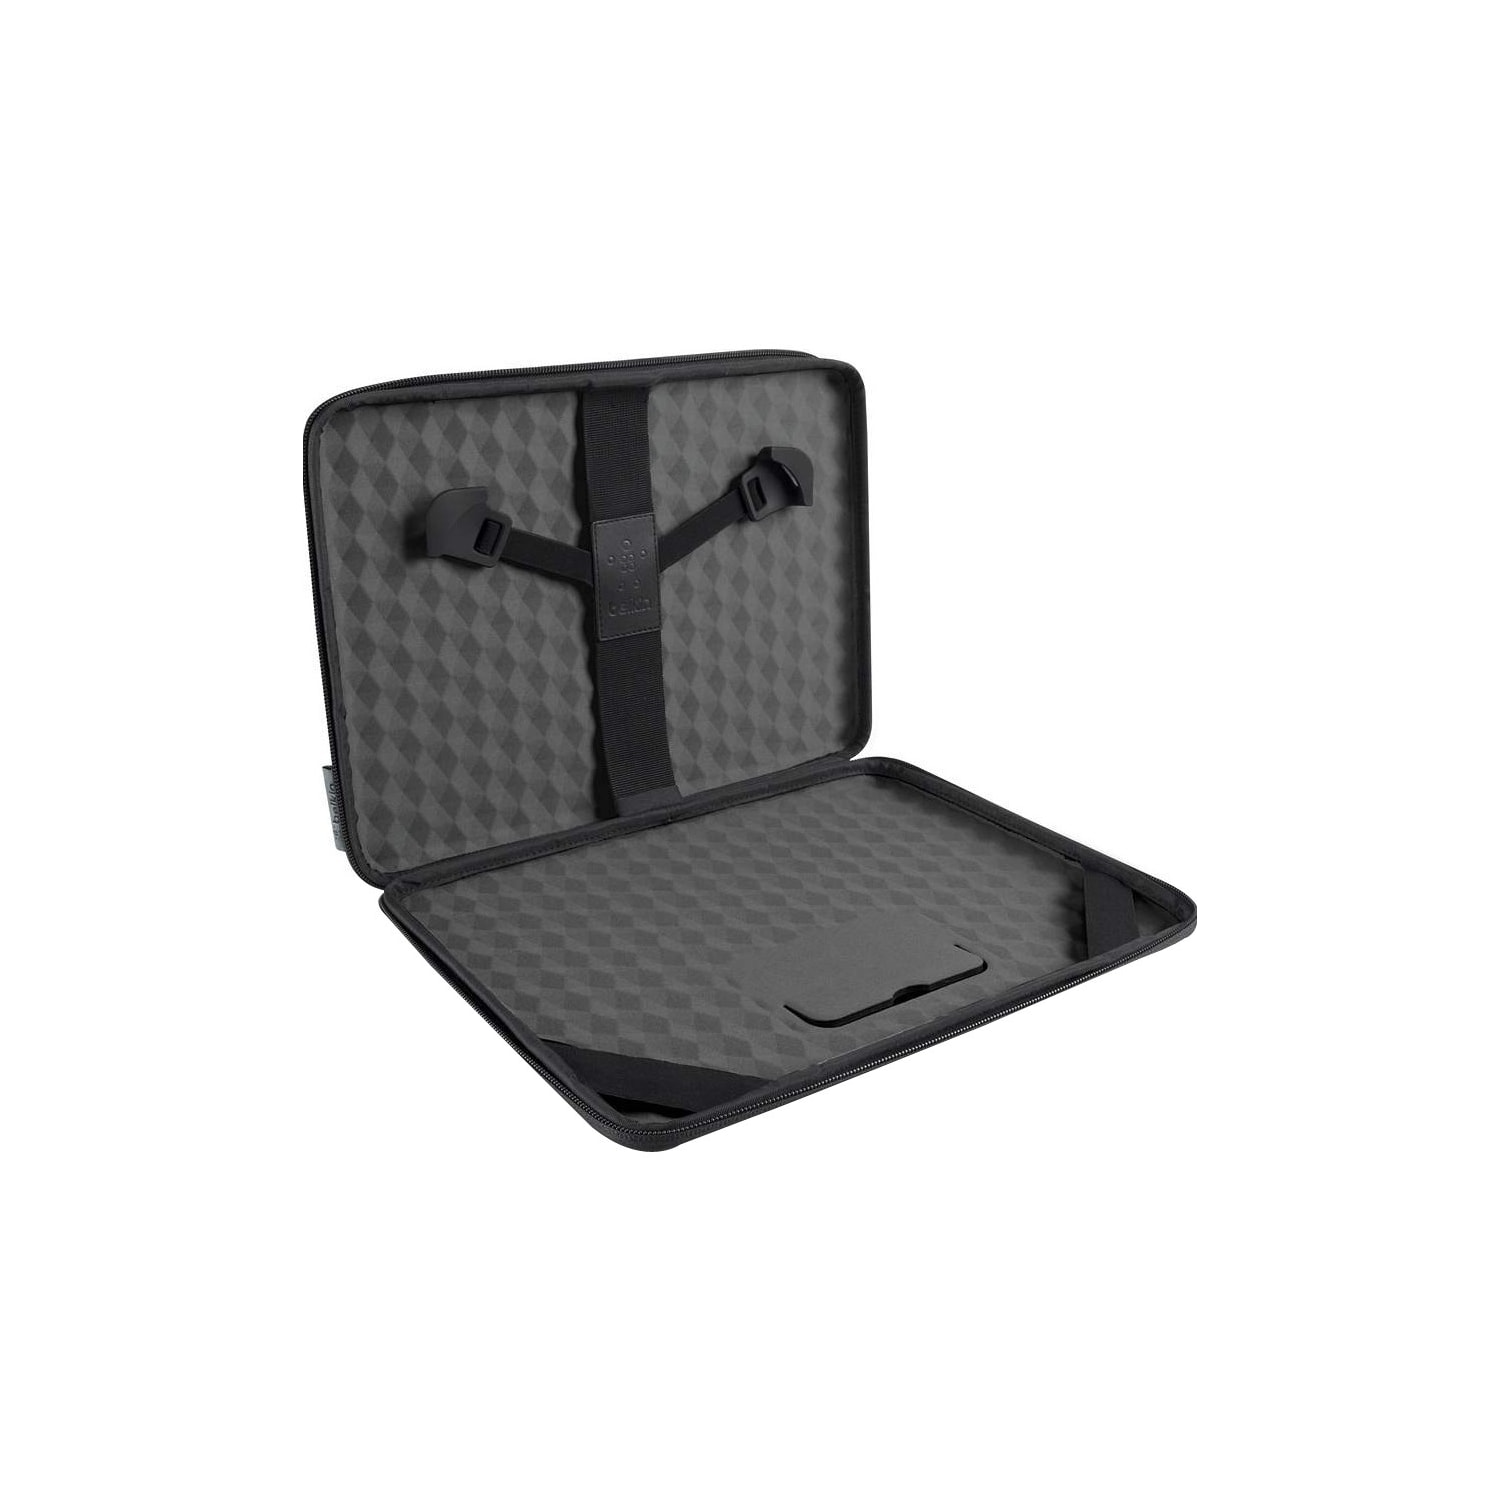 e104a2d921d3 Buy Belkin Air Protect Carrying Case (Sleeve) for 27.9 cm (11 ...